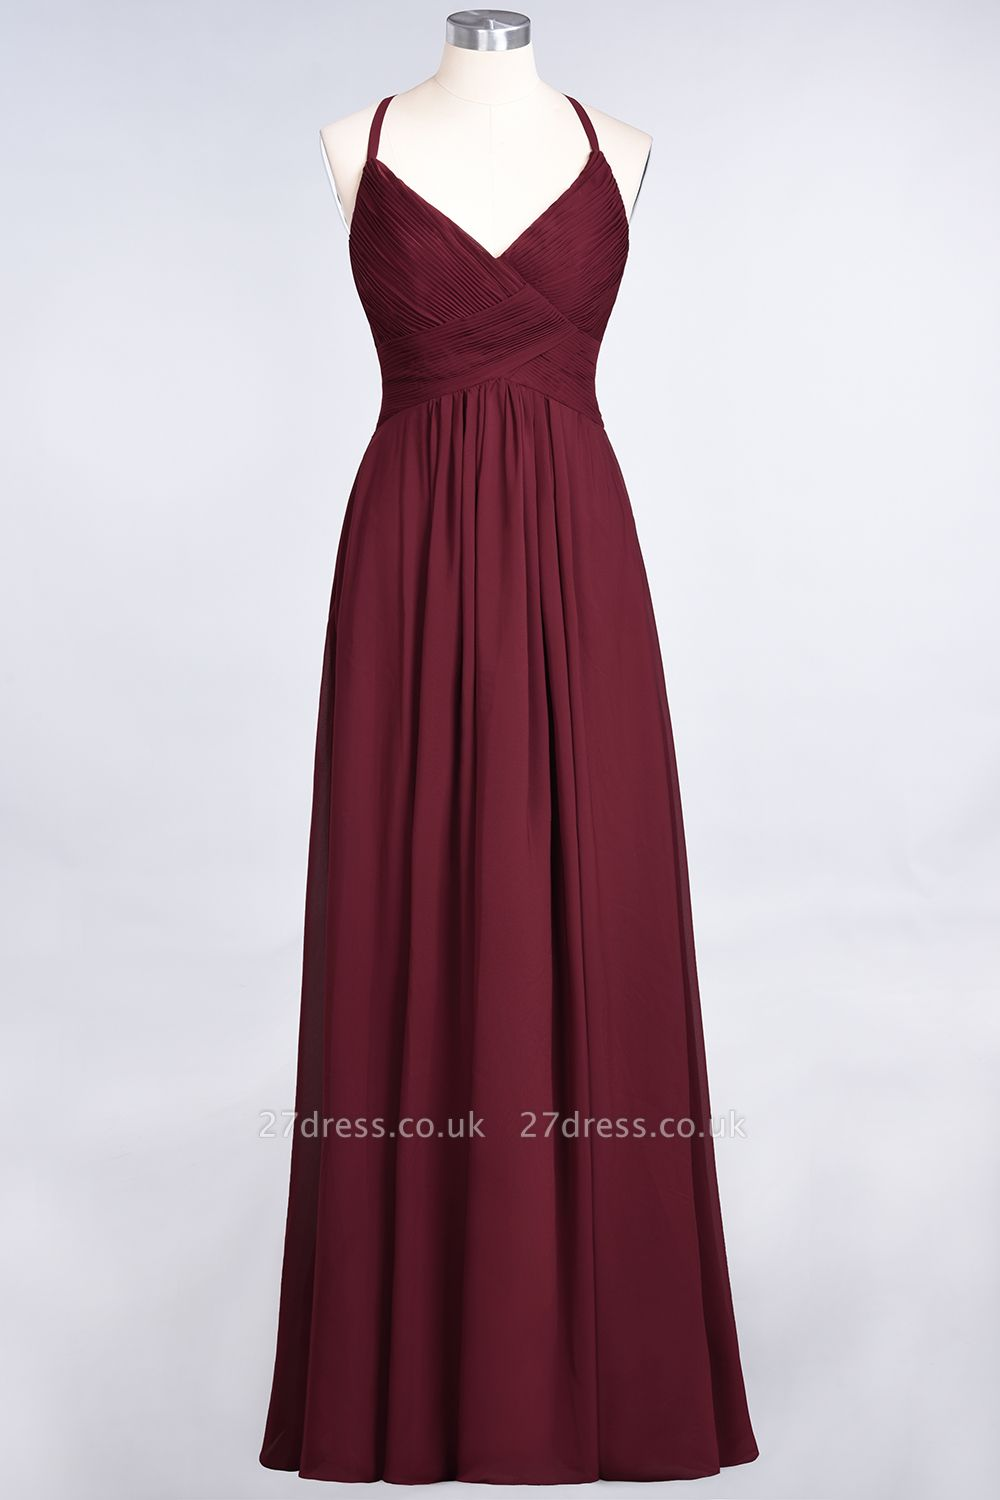 Sexy A-line Flowy Spaghetti-Straps Alluring V-neck Sleeveless Floor-Length Bridesmaid Dress UK UK with Ruffles